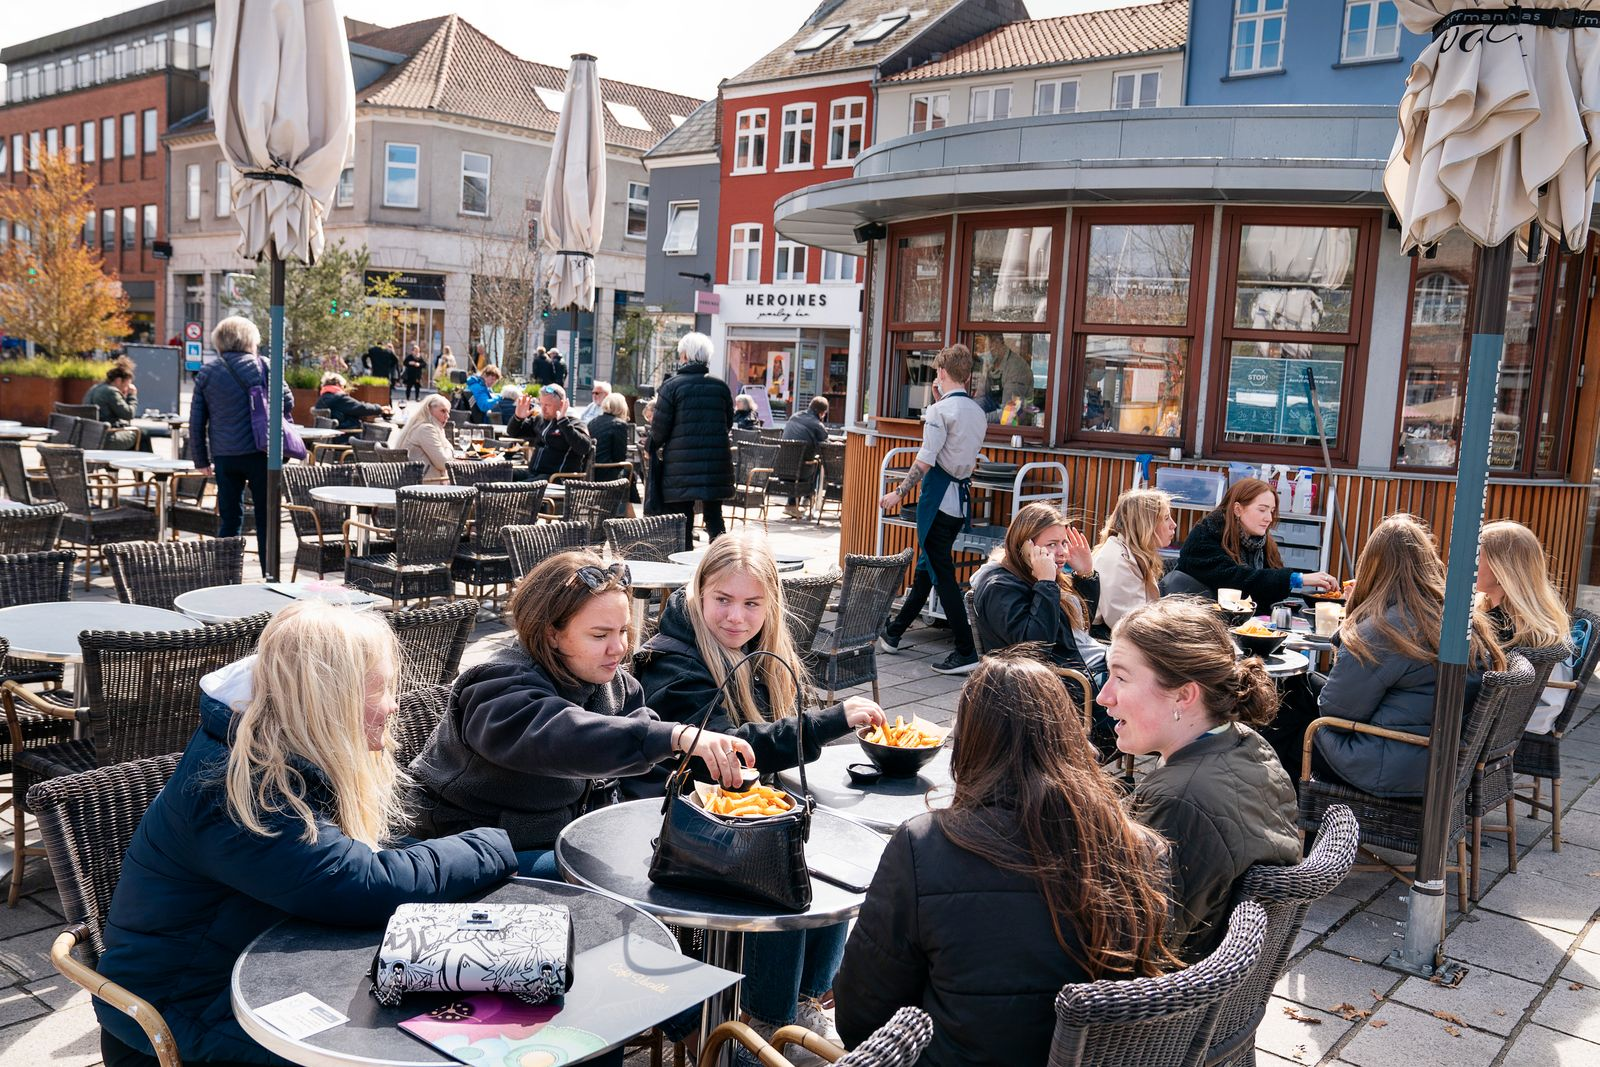 Denmark relaxes pandemic restrictions